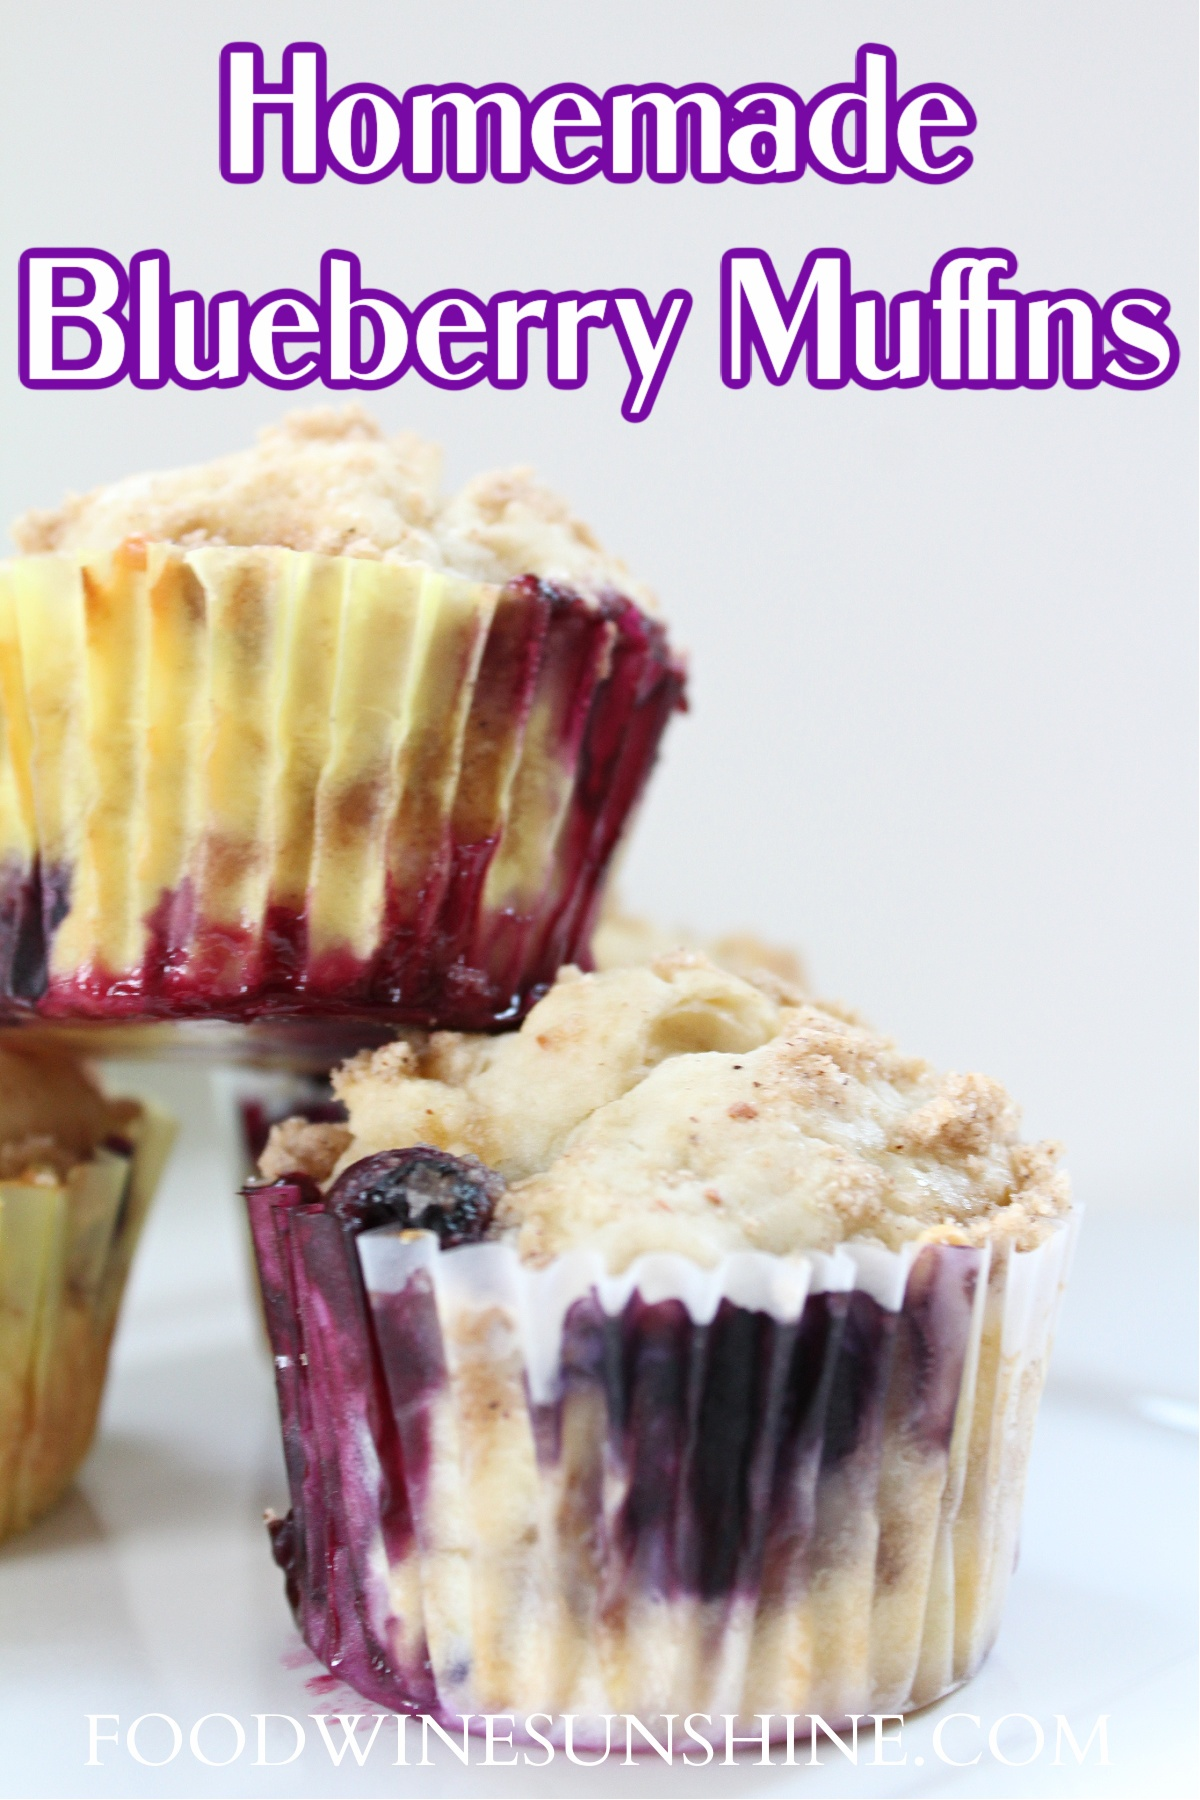 Best Homemade Healthy Blueberry Muffins